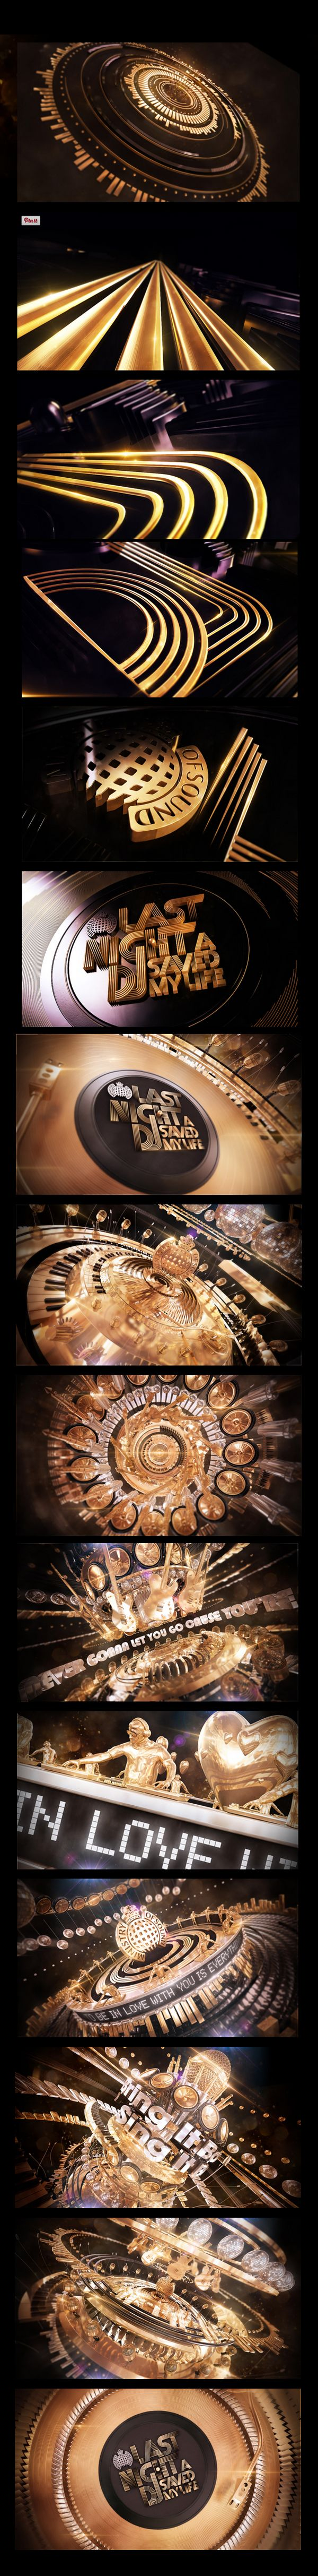 Client: Ministry Of Sound Agency: Bolder Creative TVC Pitch for LNADJSML by Ministry Of Sound. DJ modelling and rigging by Luca Viola. We created a vast self generating and transforming music machine. Starting on macro shots of traveling golden lines that would build up the logo we would then zoom out to wide angle shots of this complex disco inspired music machine. Unfortunately they went with something else.